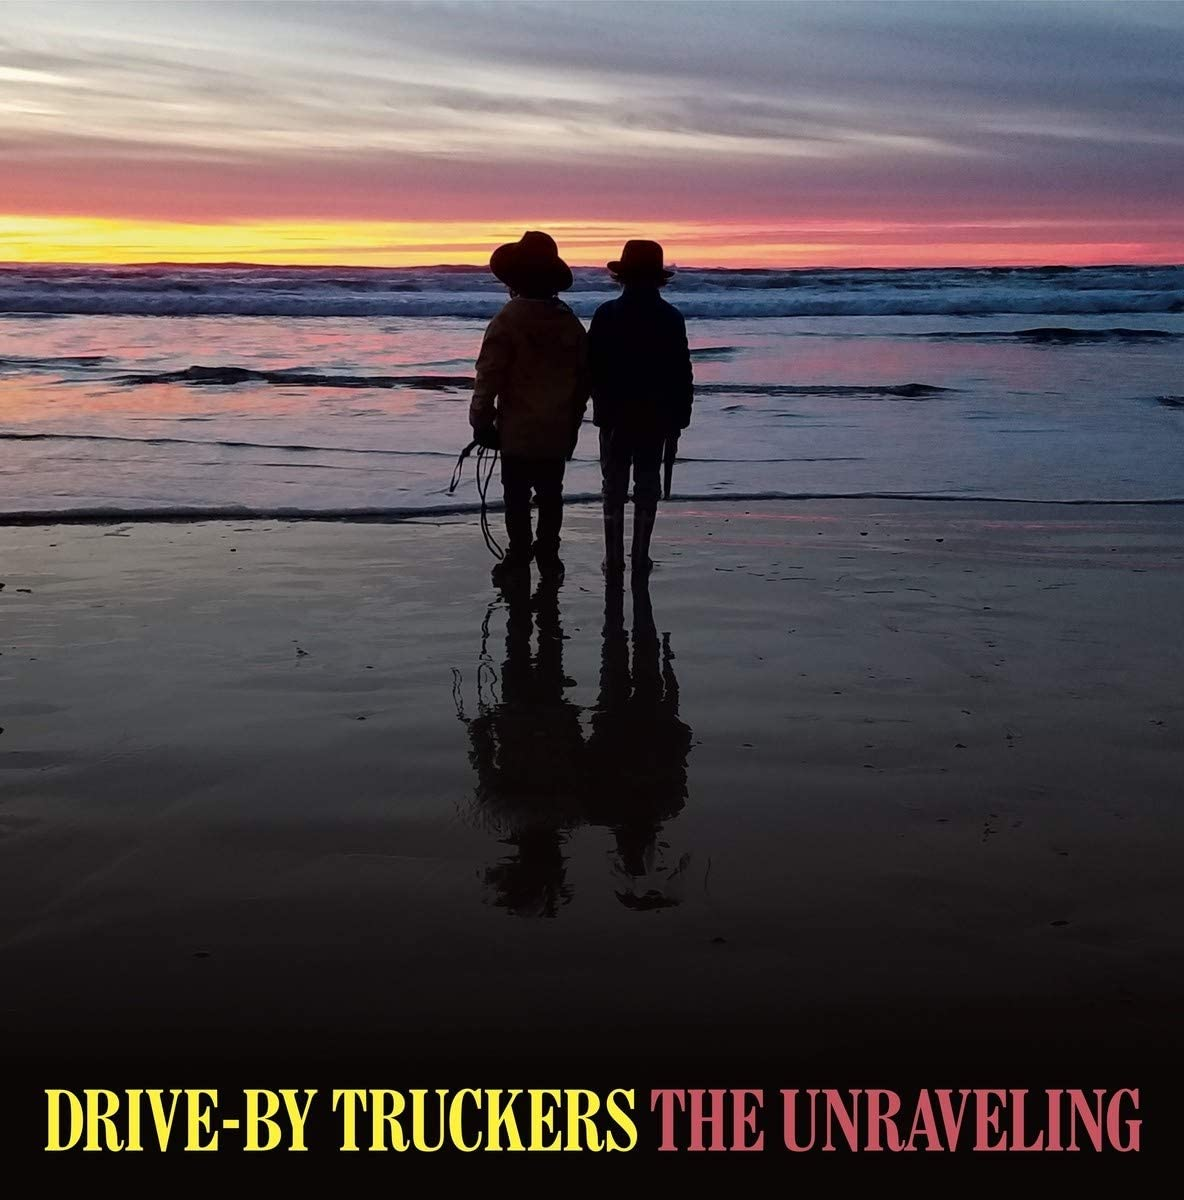 Albums of the Year 2020: Drive-By Truckers